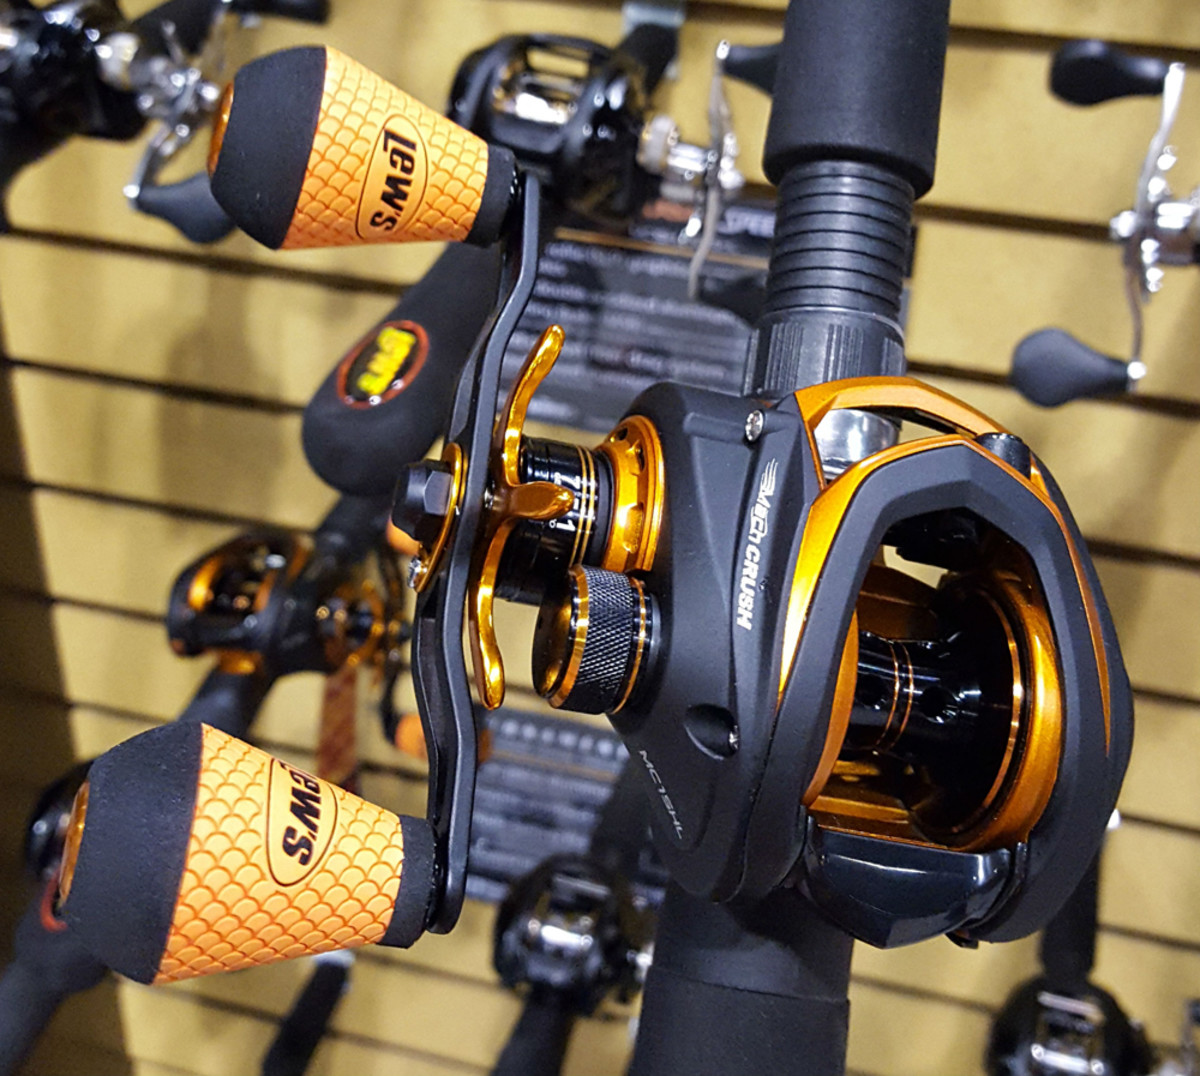 Rod-and-reel combo: Lew's Tackle made it two years in a row winning in this category with its eye-catching orange-and-black-trimmed Mach Crush rod-and-reel combo in spinning reel and casting reel configurations.